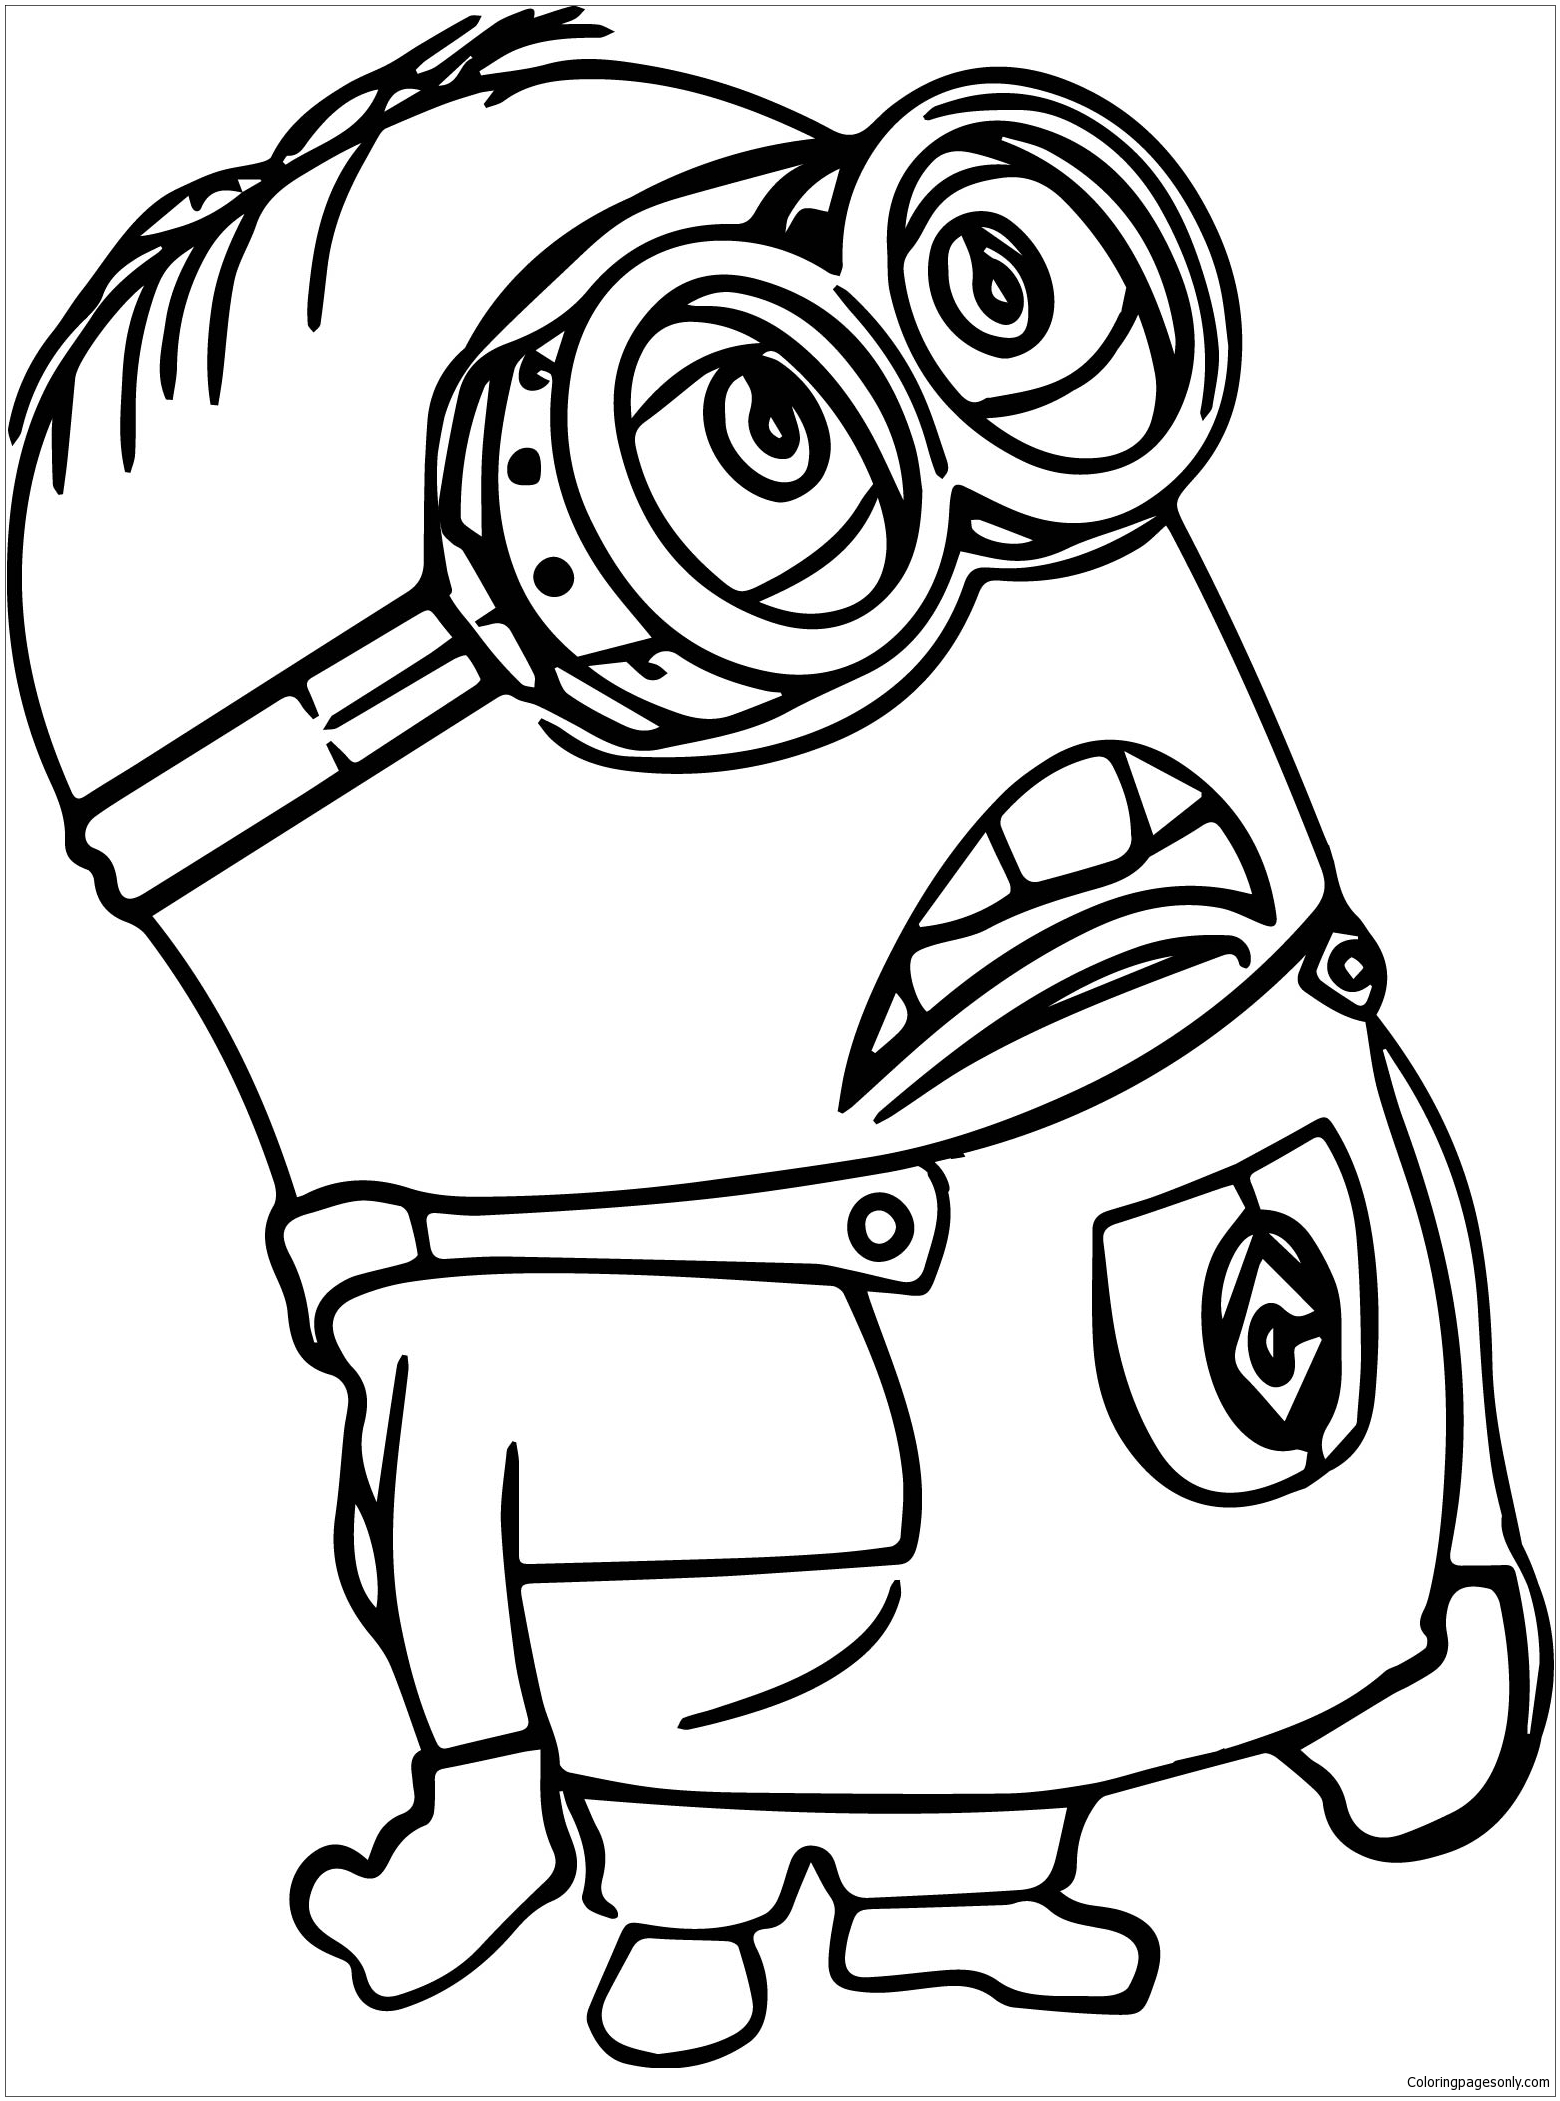 Minion Of Despicable Me Coloring